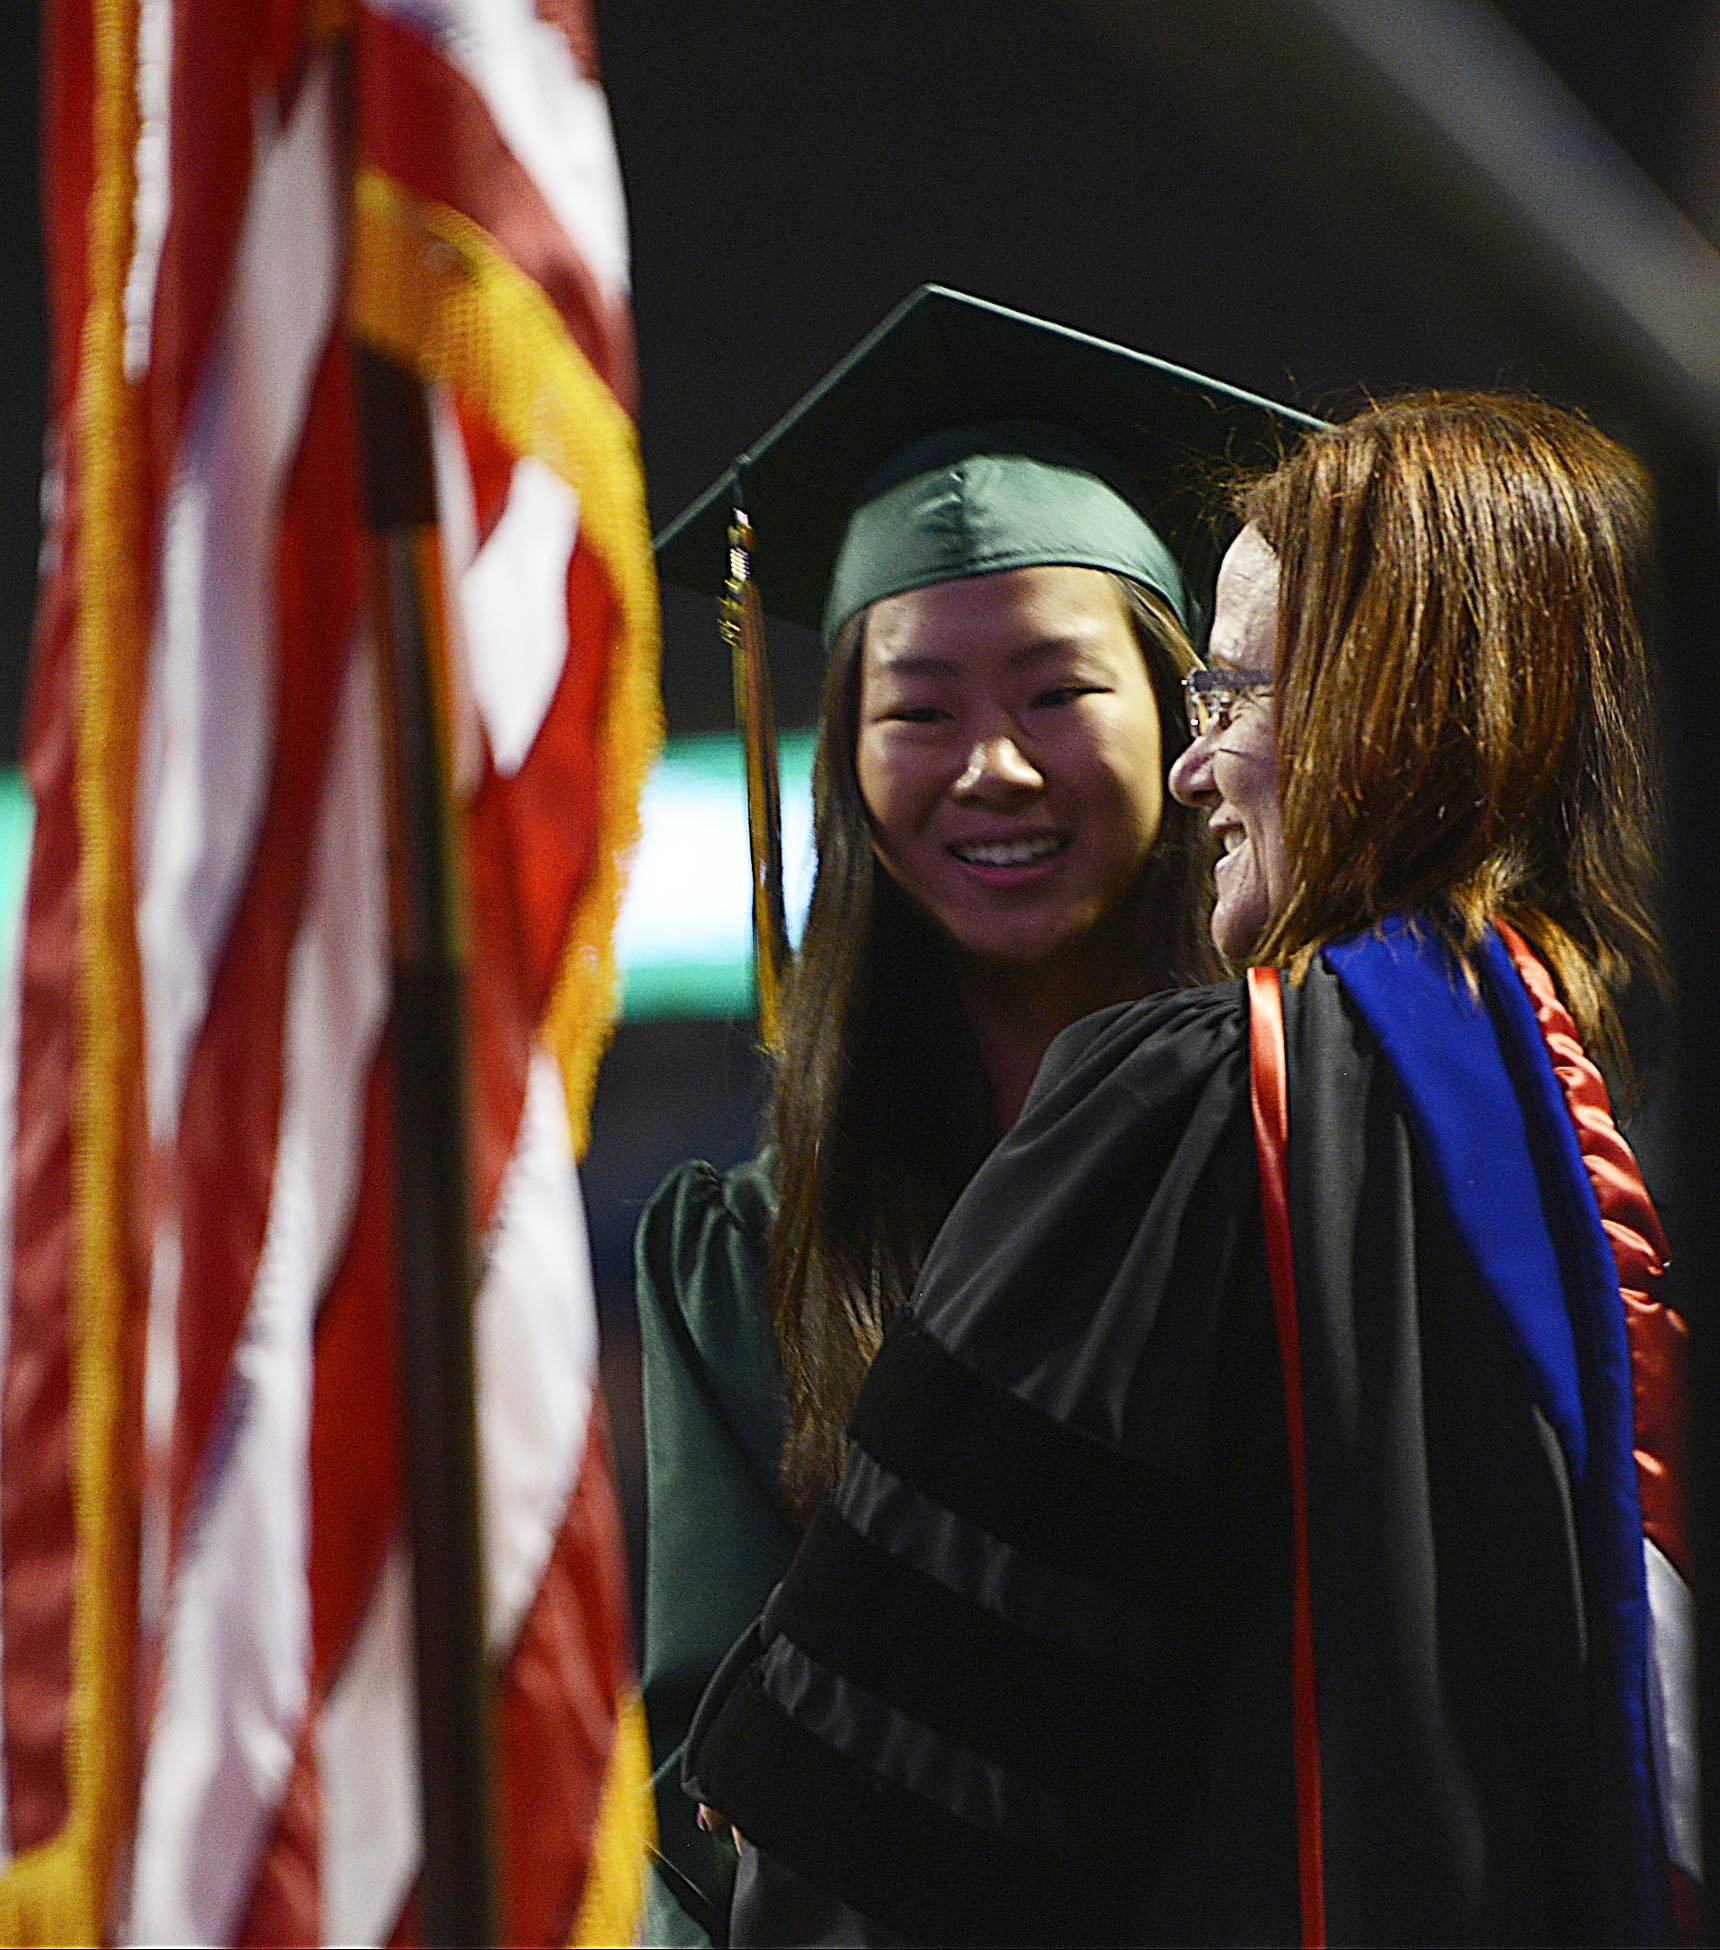 Images from the Stevenson High School graduation on Thursday, June 5 at the Sears Centre in Hoffman Estates.